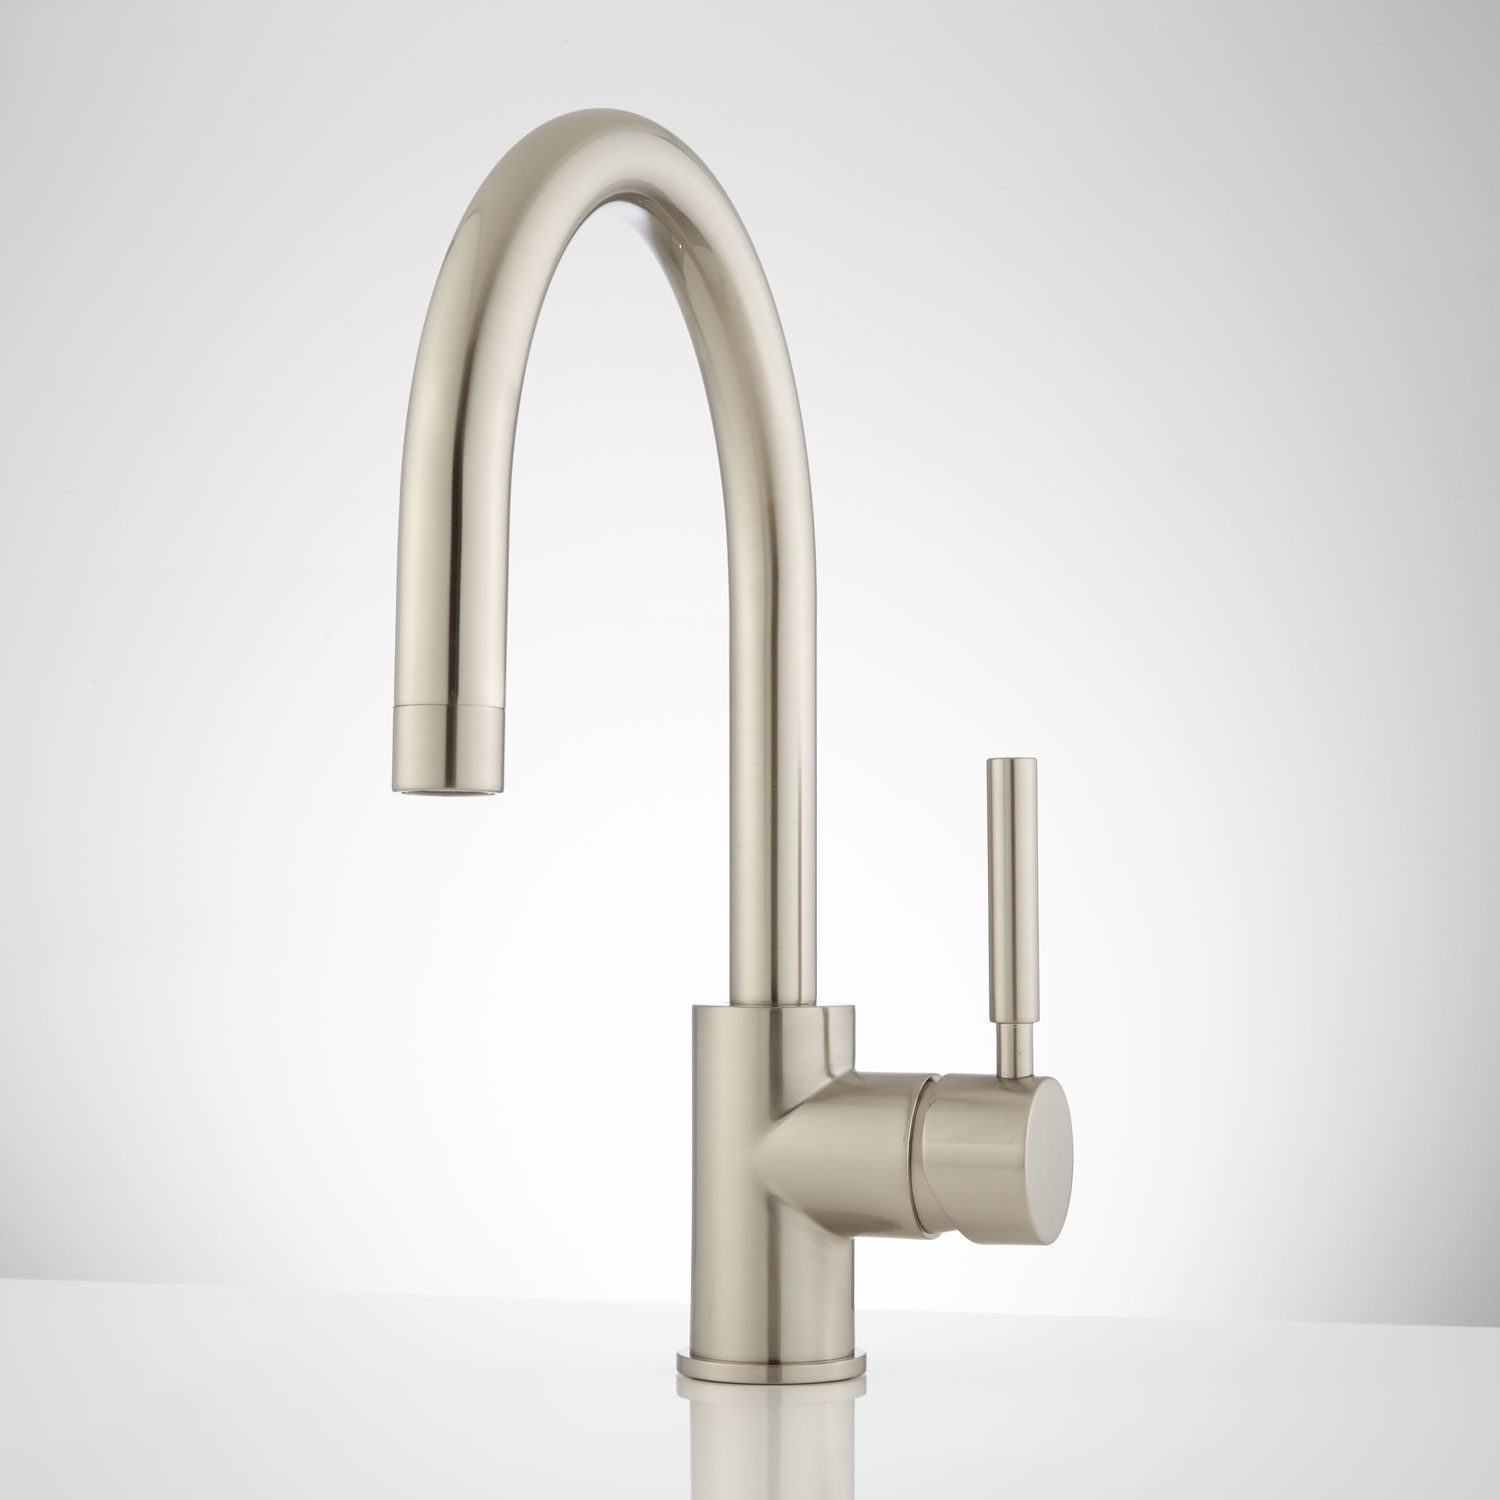 Ideas, casimir single hole bathroom faucet with pop up drain single throughout sizing 1500 x 1500  .